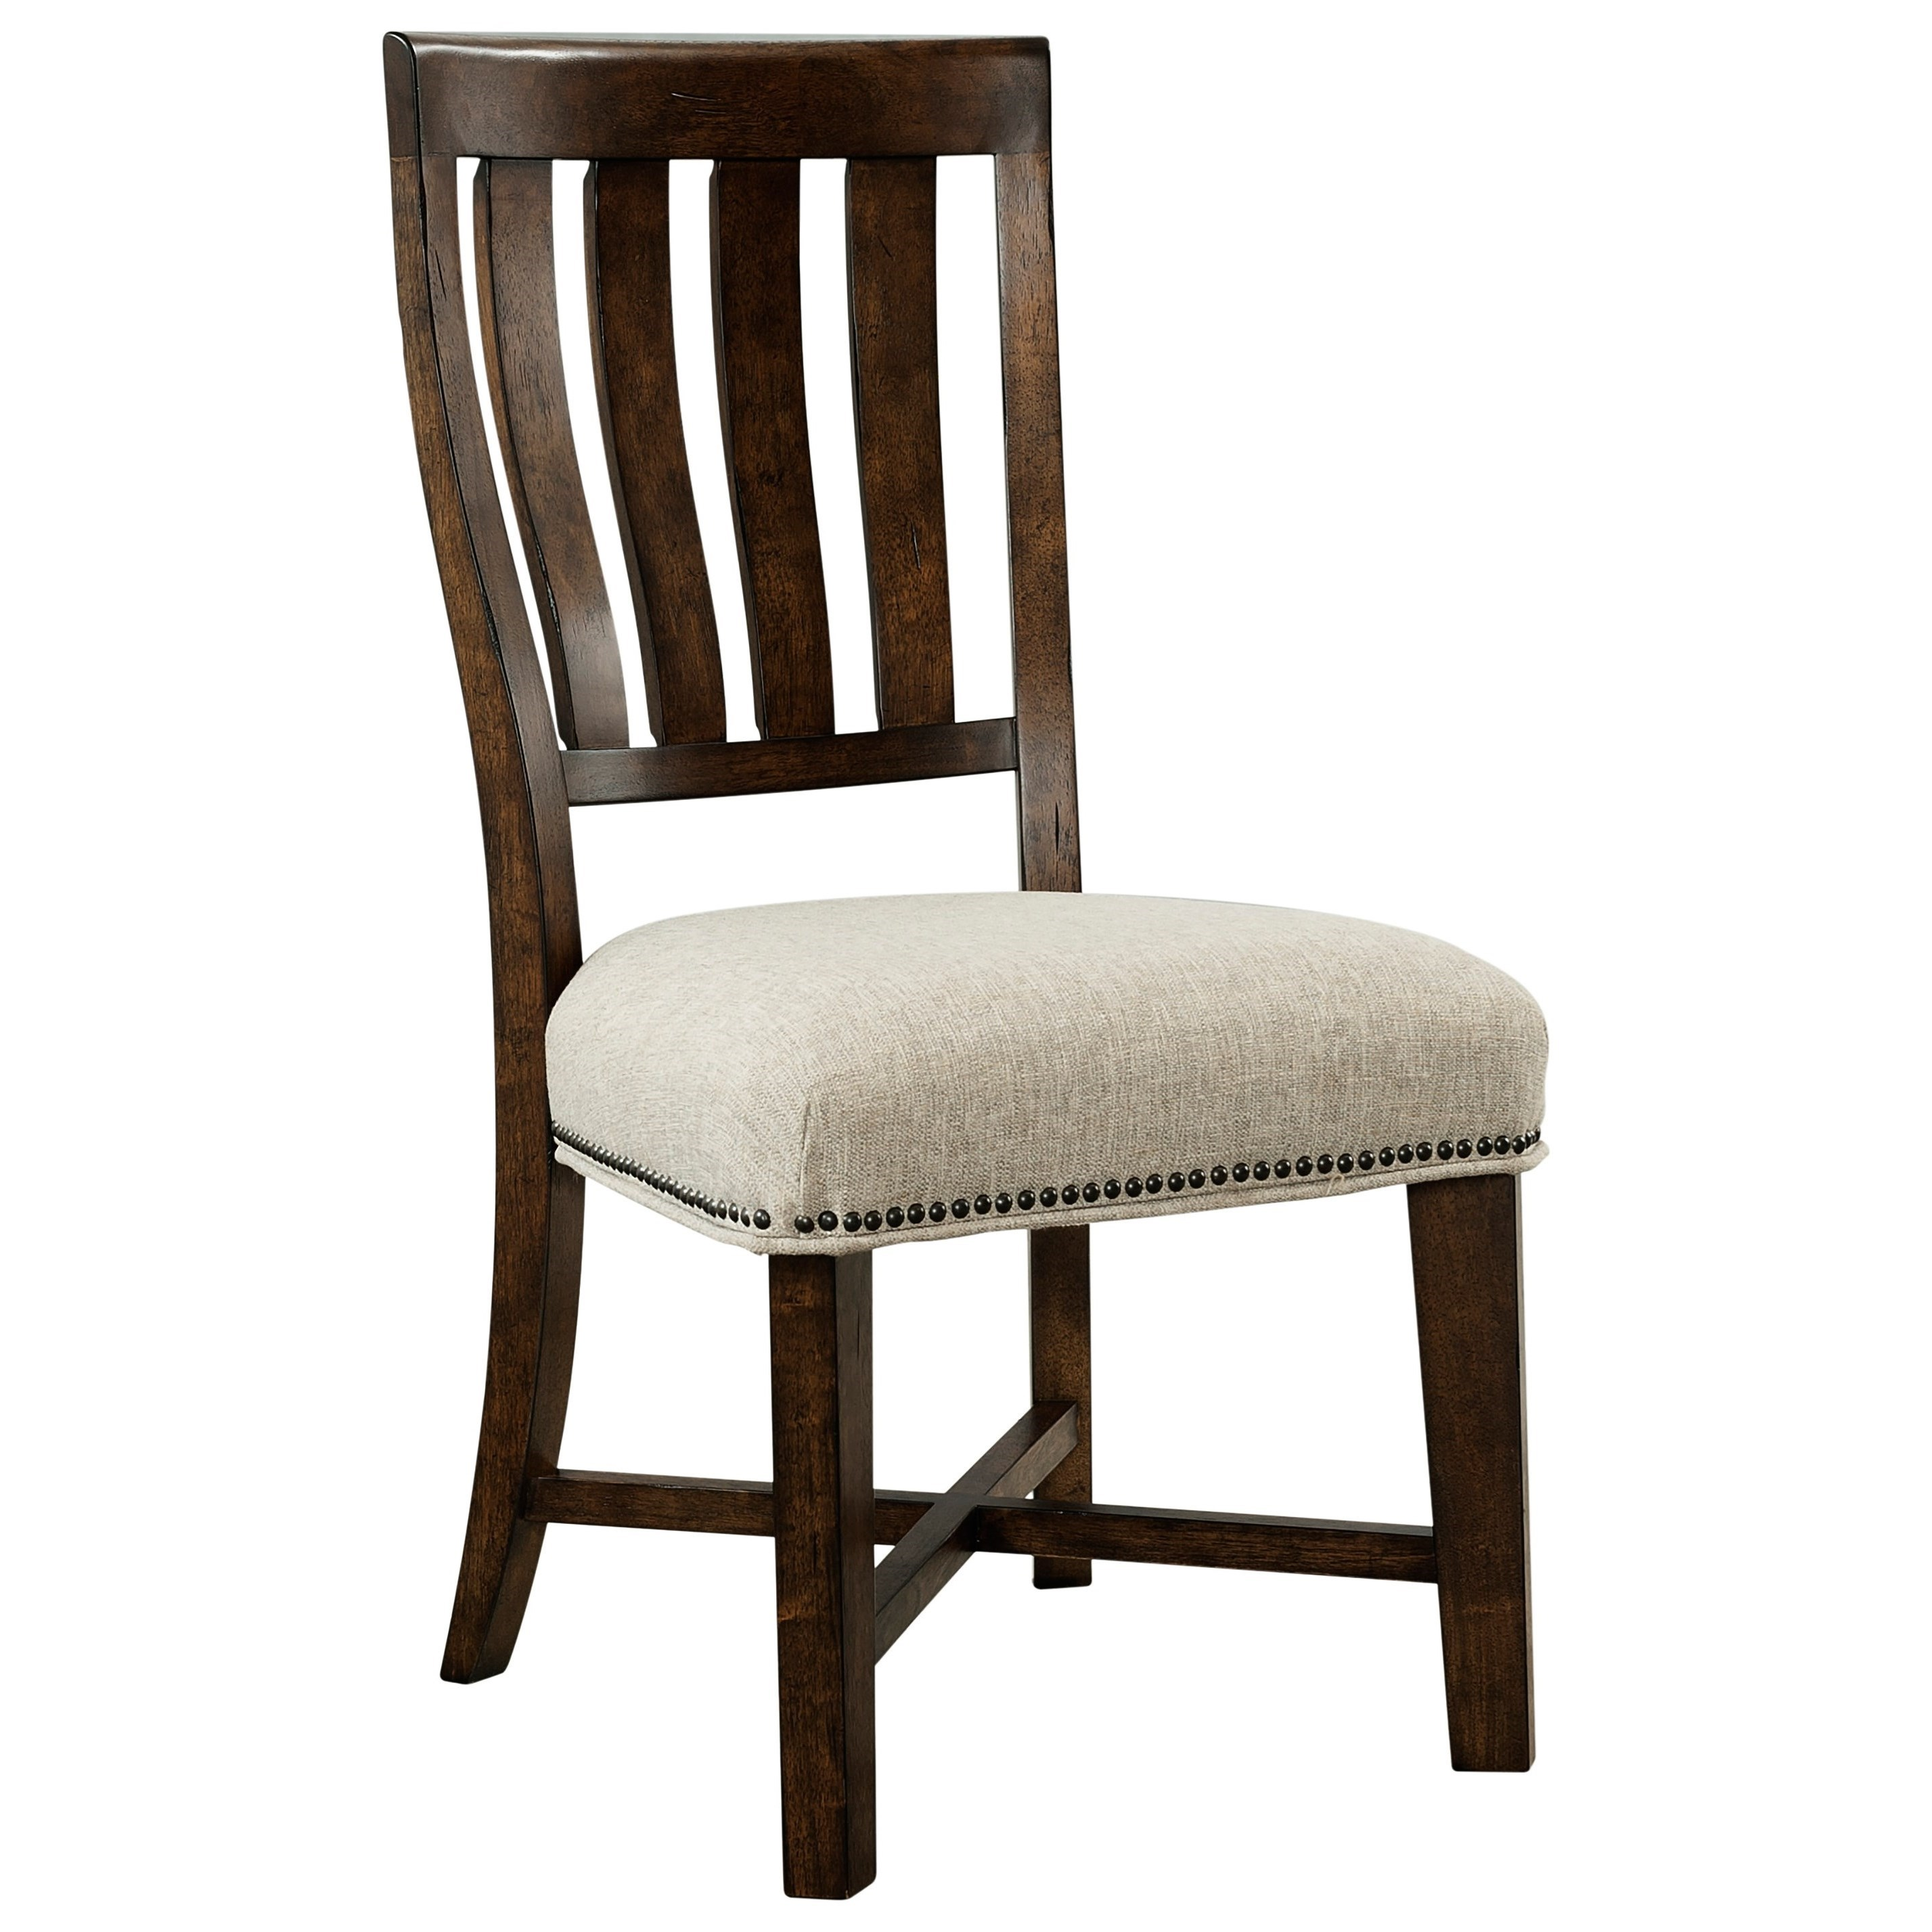 Broyhill Furniture Pieceworks 4546 581 Side Chair With Upholstered Seat John V Schultz